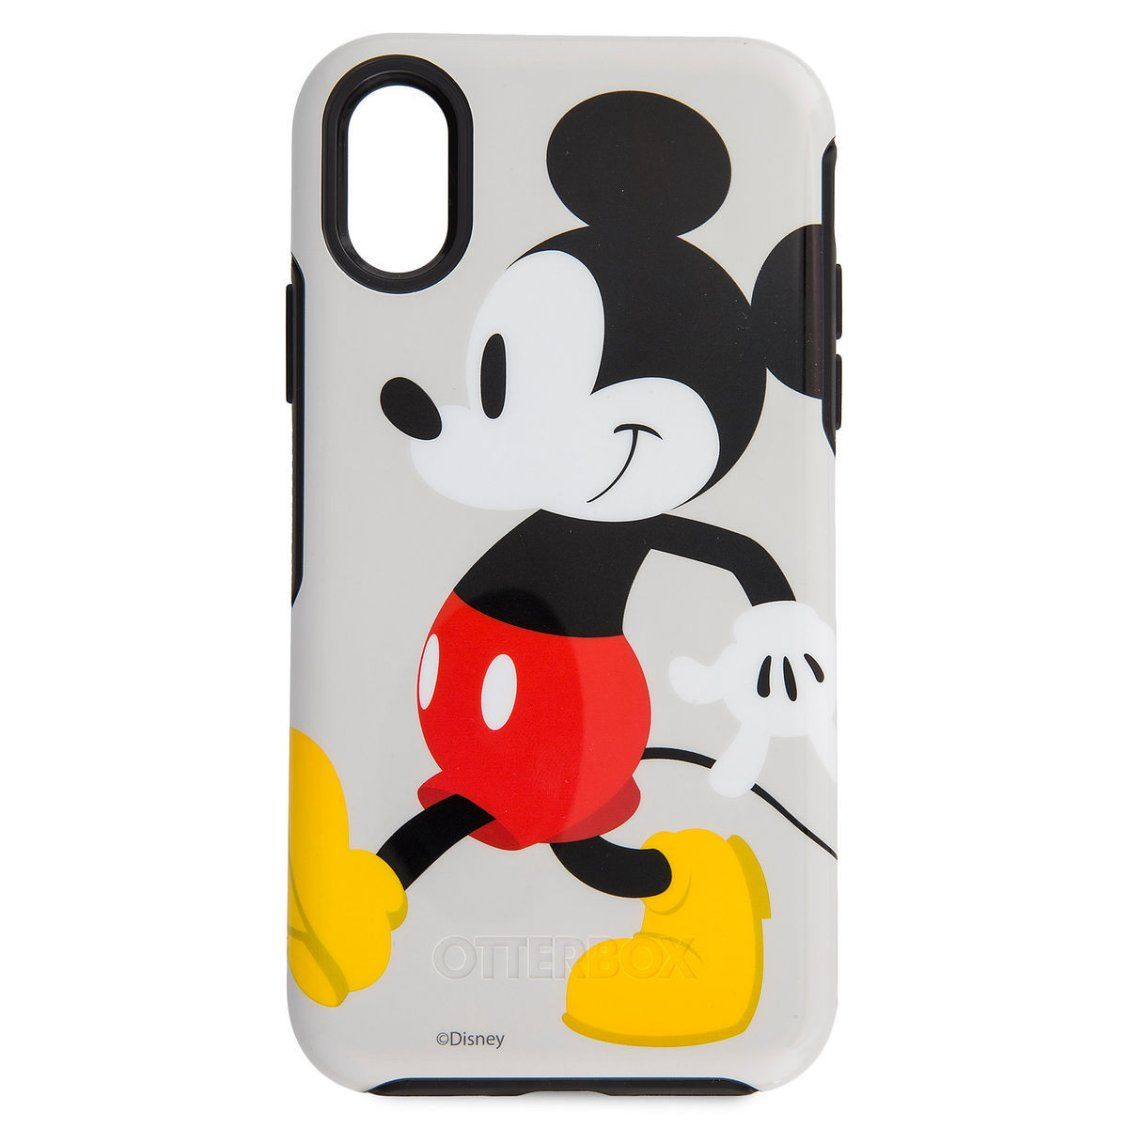 iPhone X Case Disney Mouse Mickey